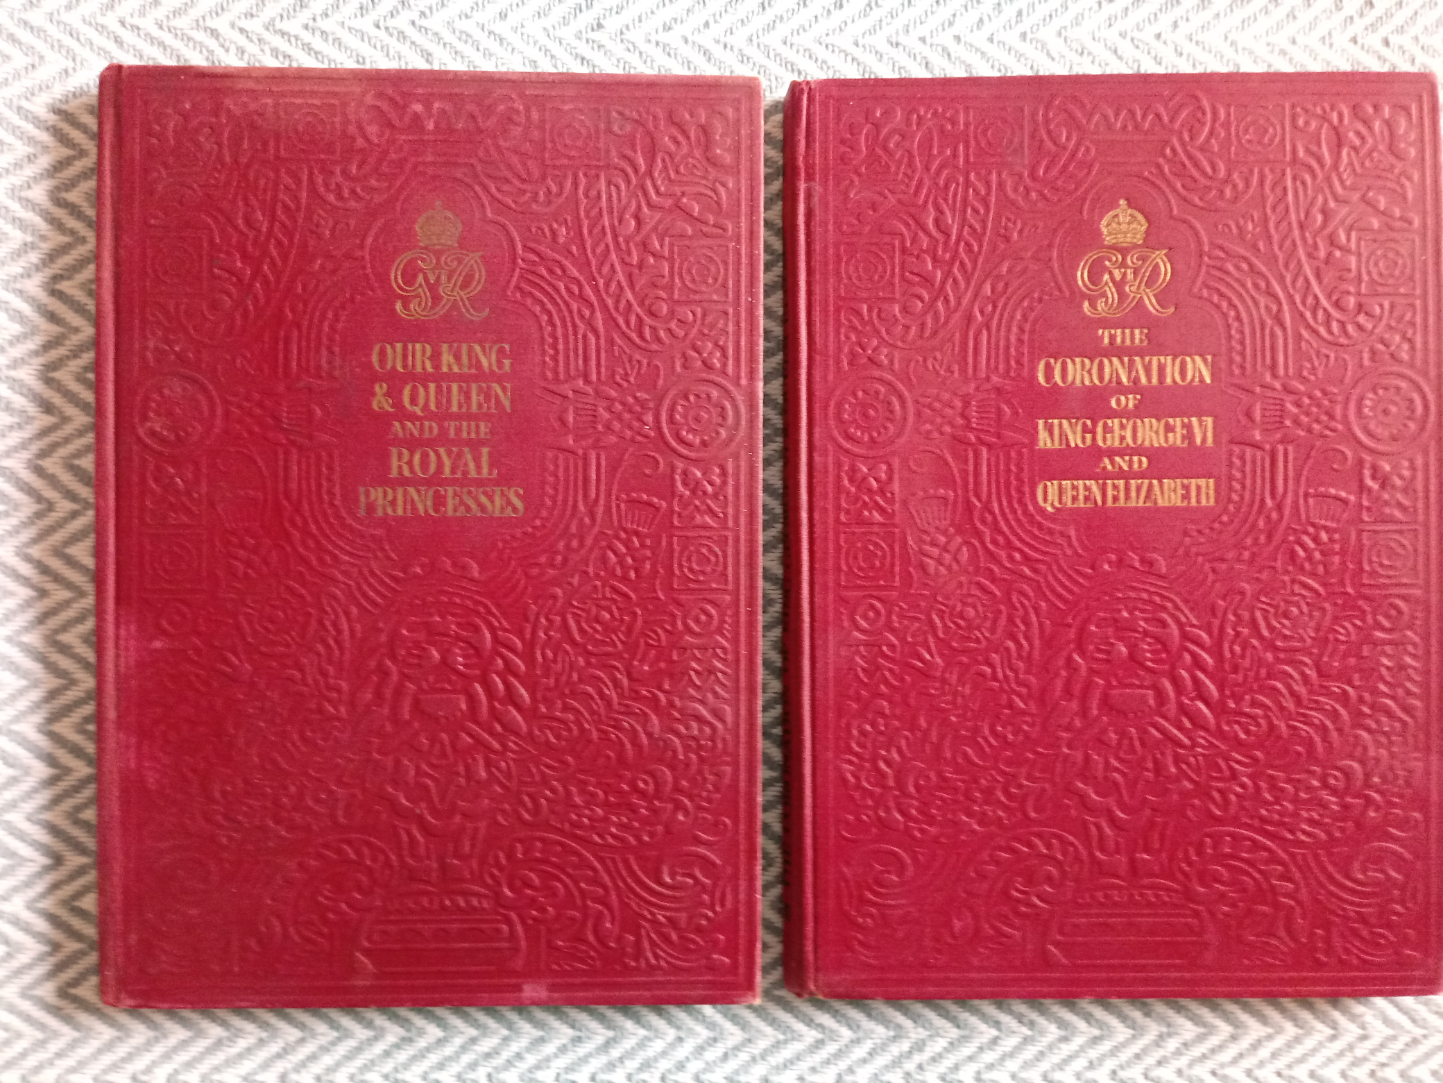 2 x hardback books published Odhams Press 1- The Coronation Of King George VI And Queen Elizabeth